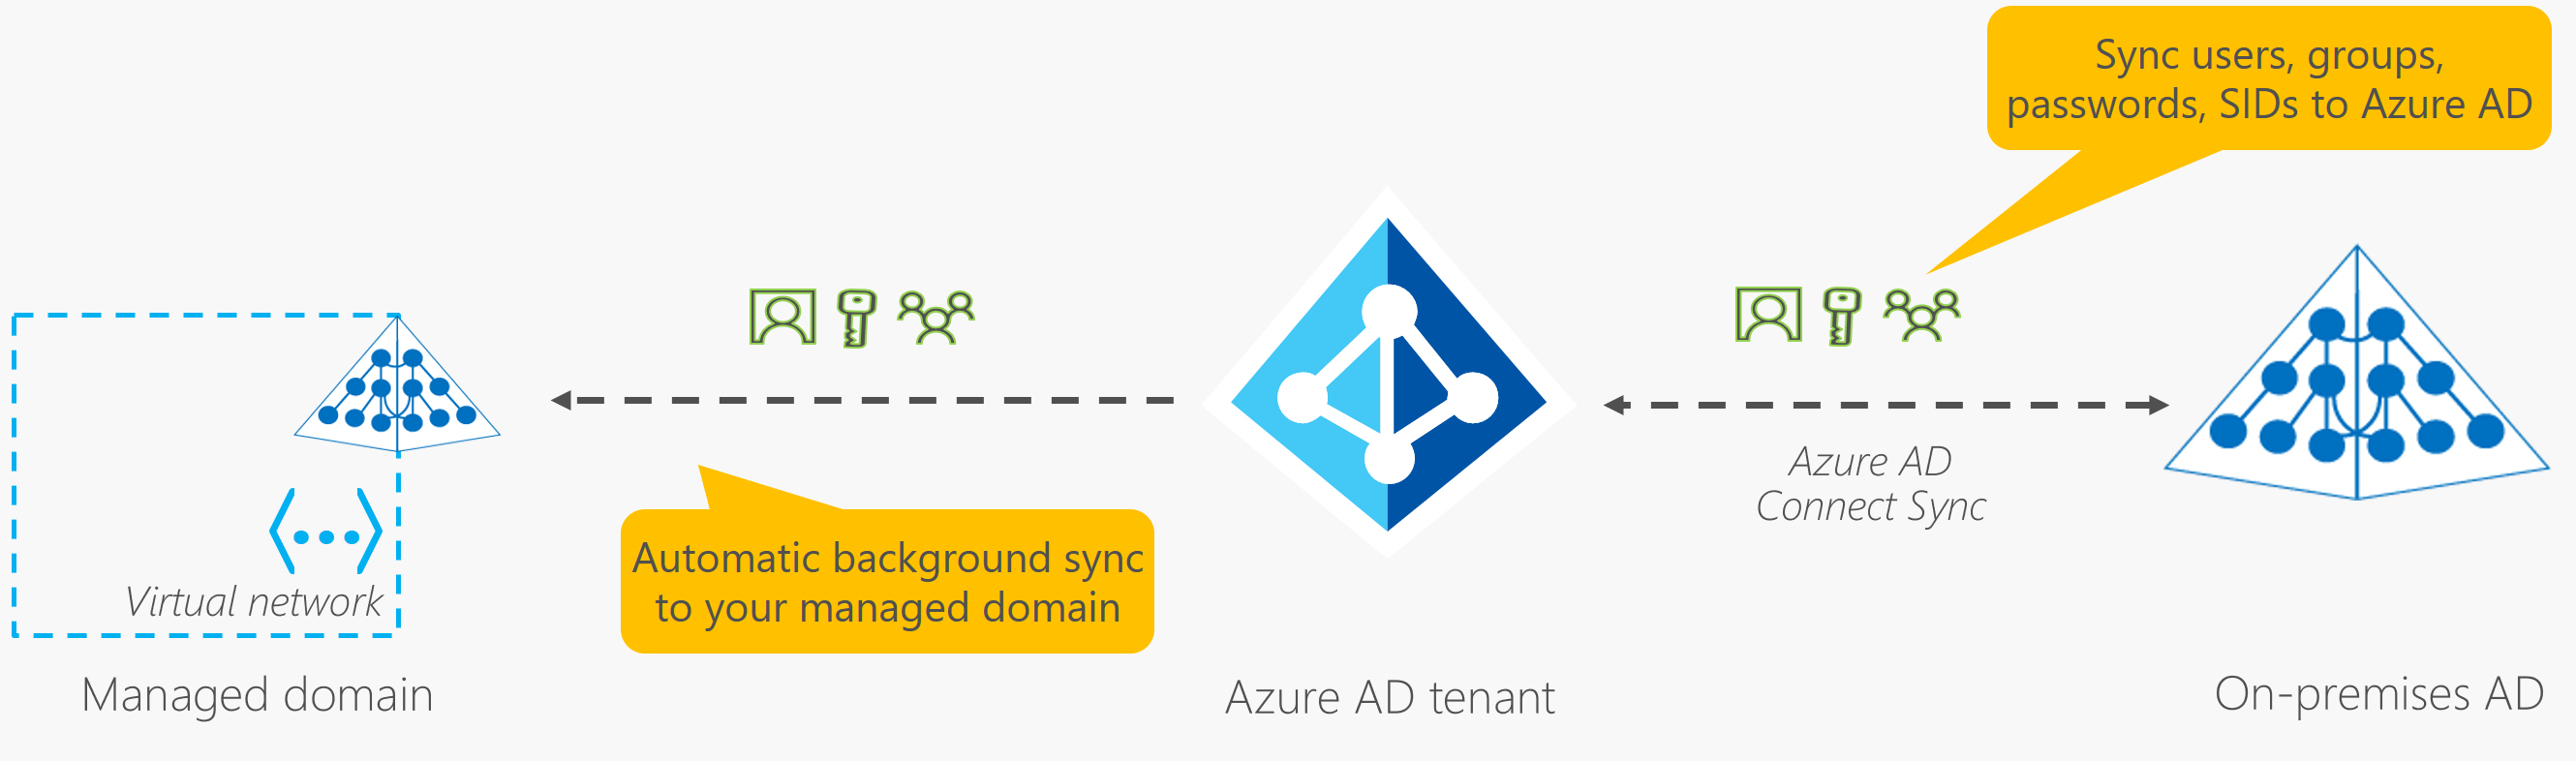 Synchronization in Azure AD Domain Services with Azure AD and on-premises AD DS using AD Connect